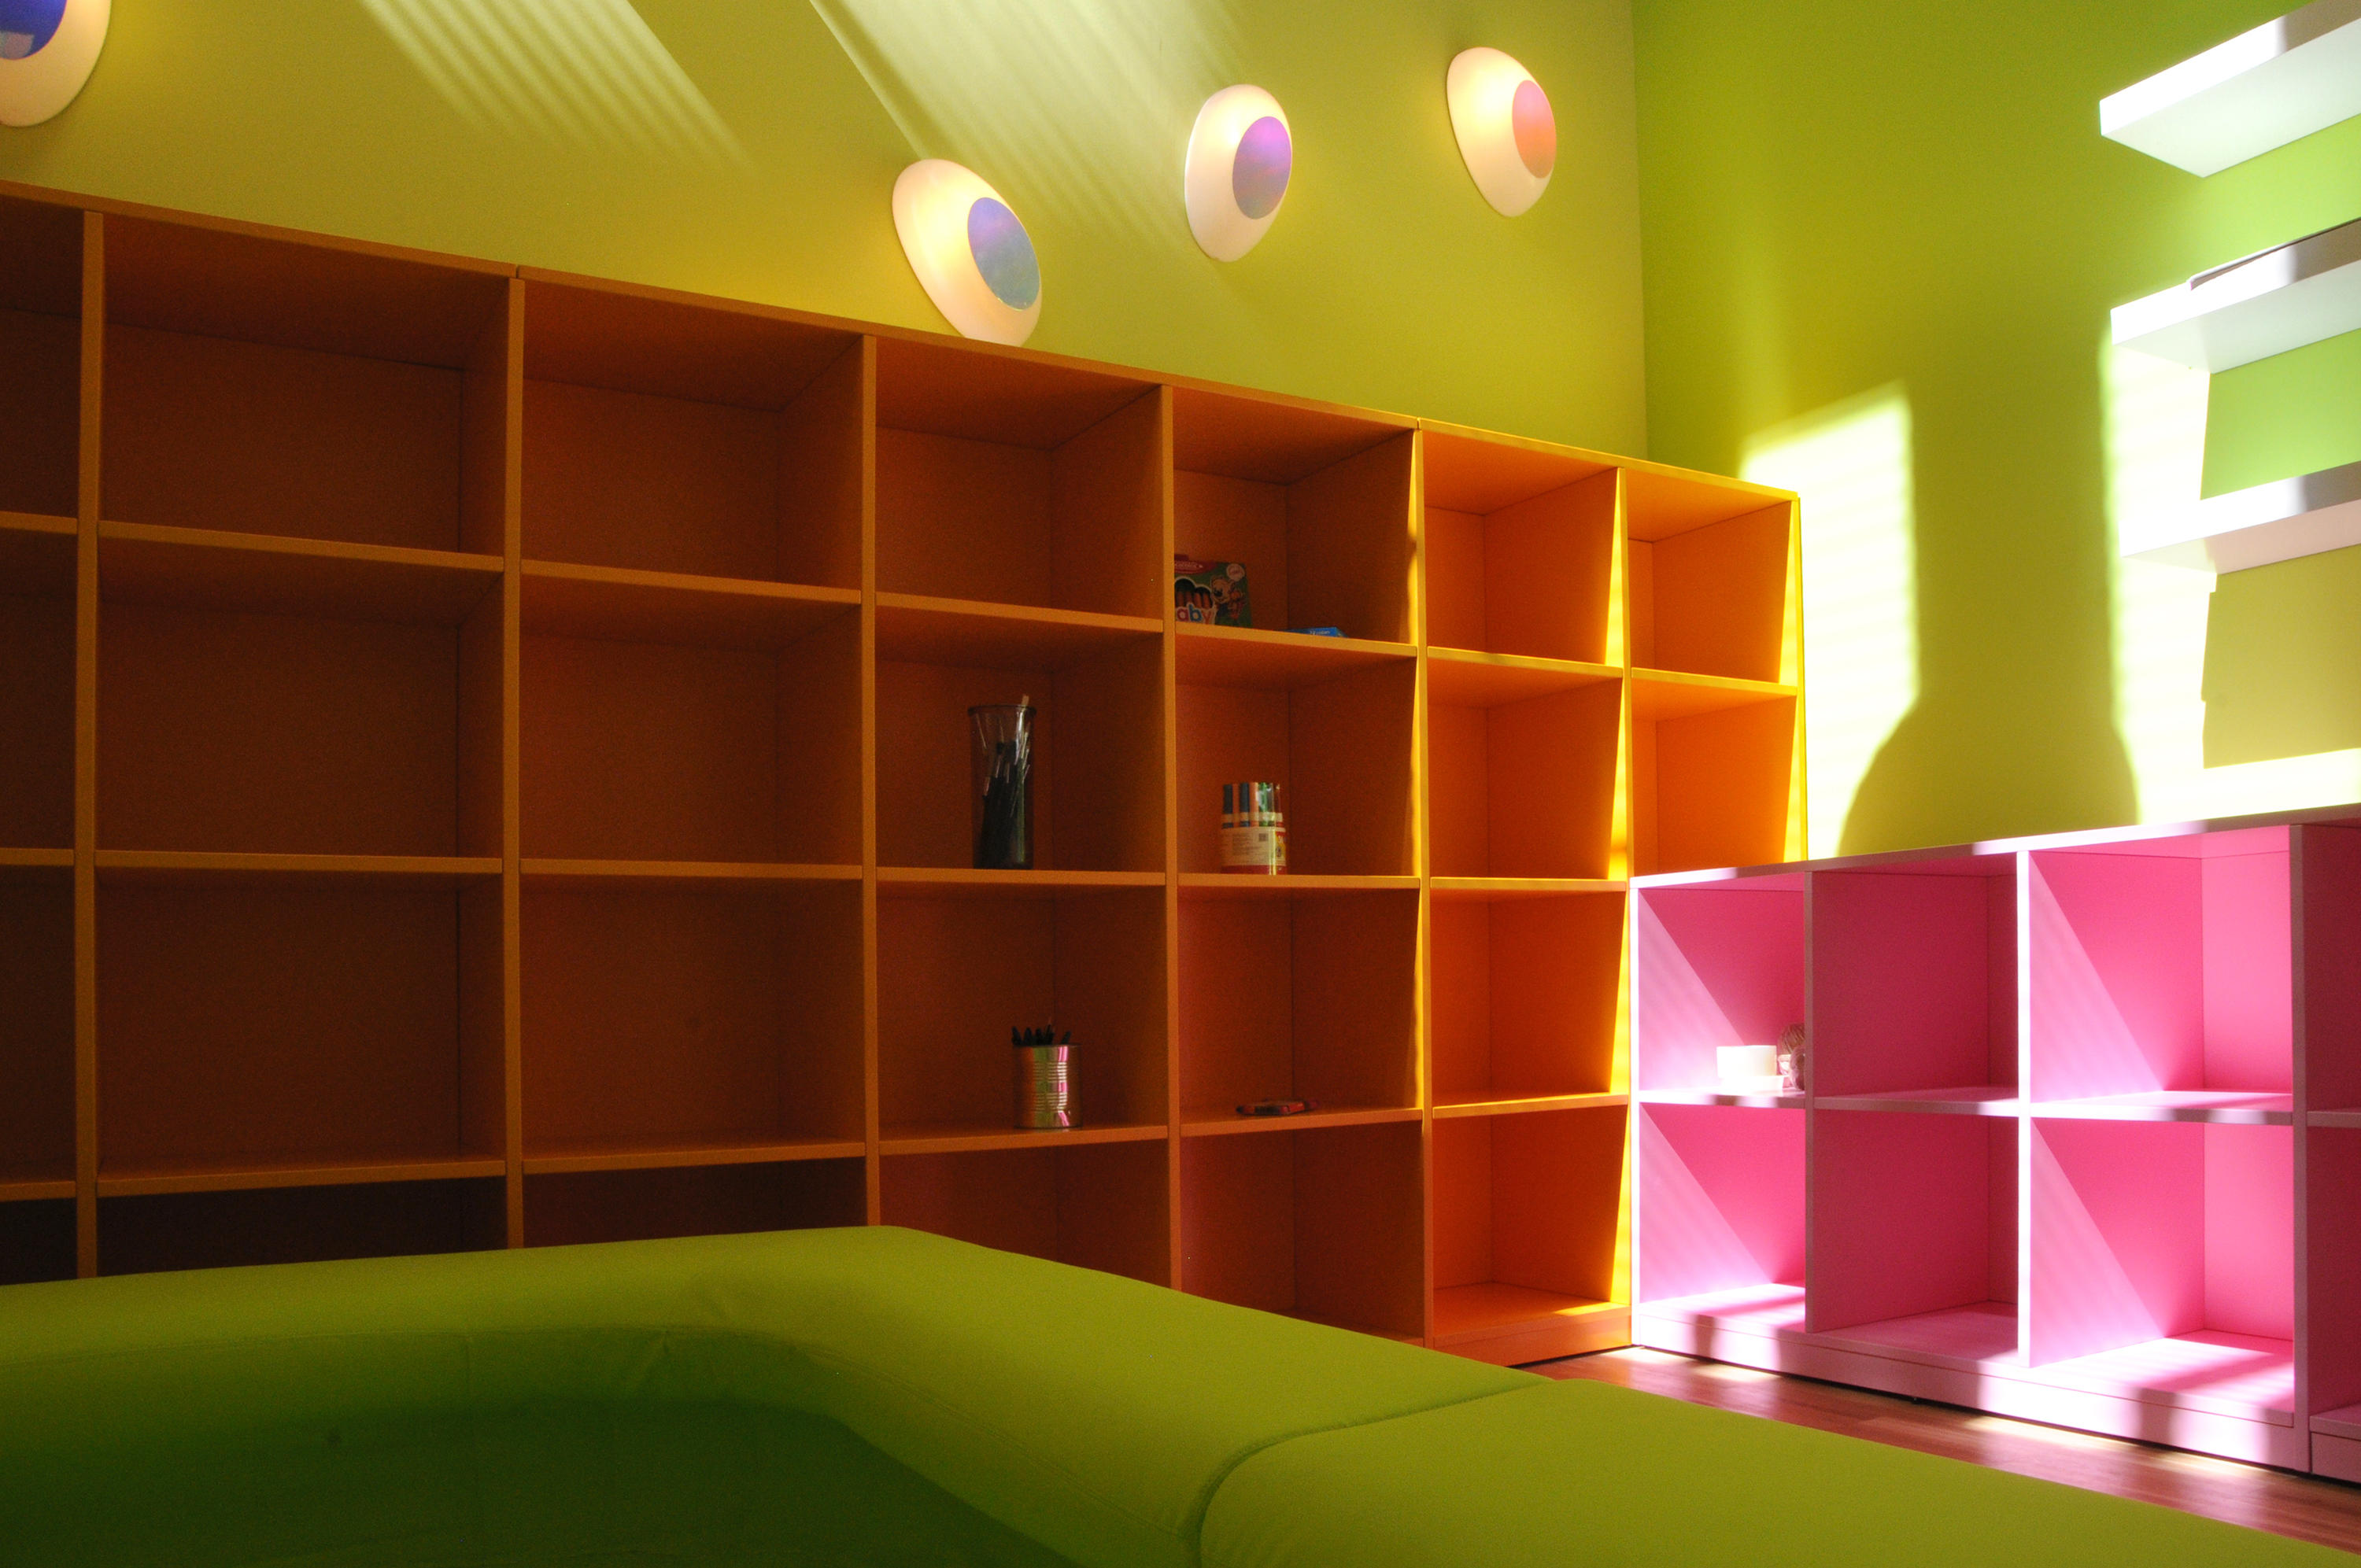 Basic Bookshelf Color By PLAY